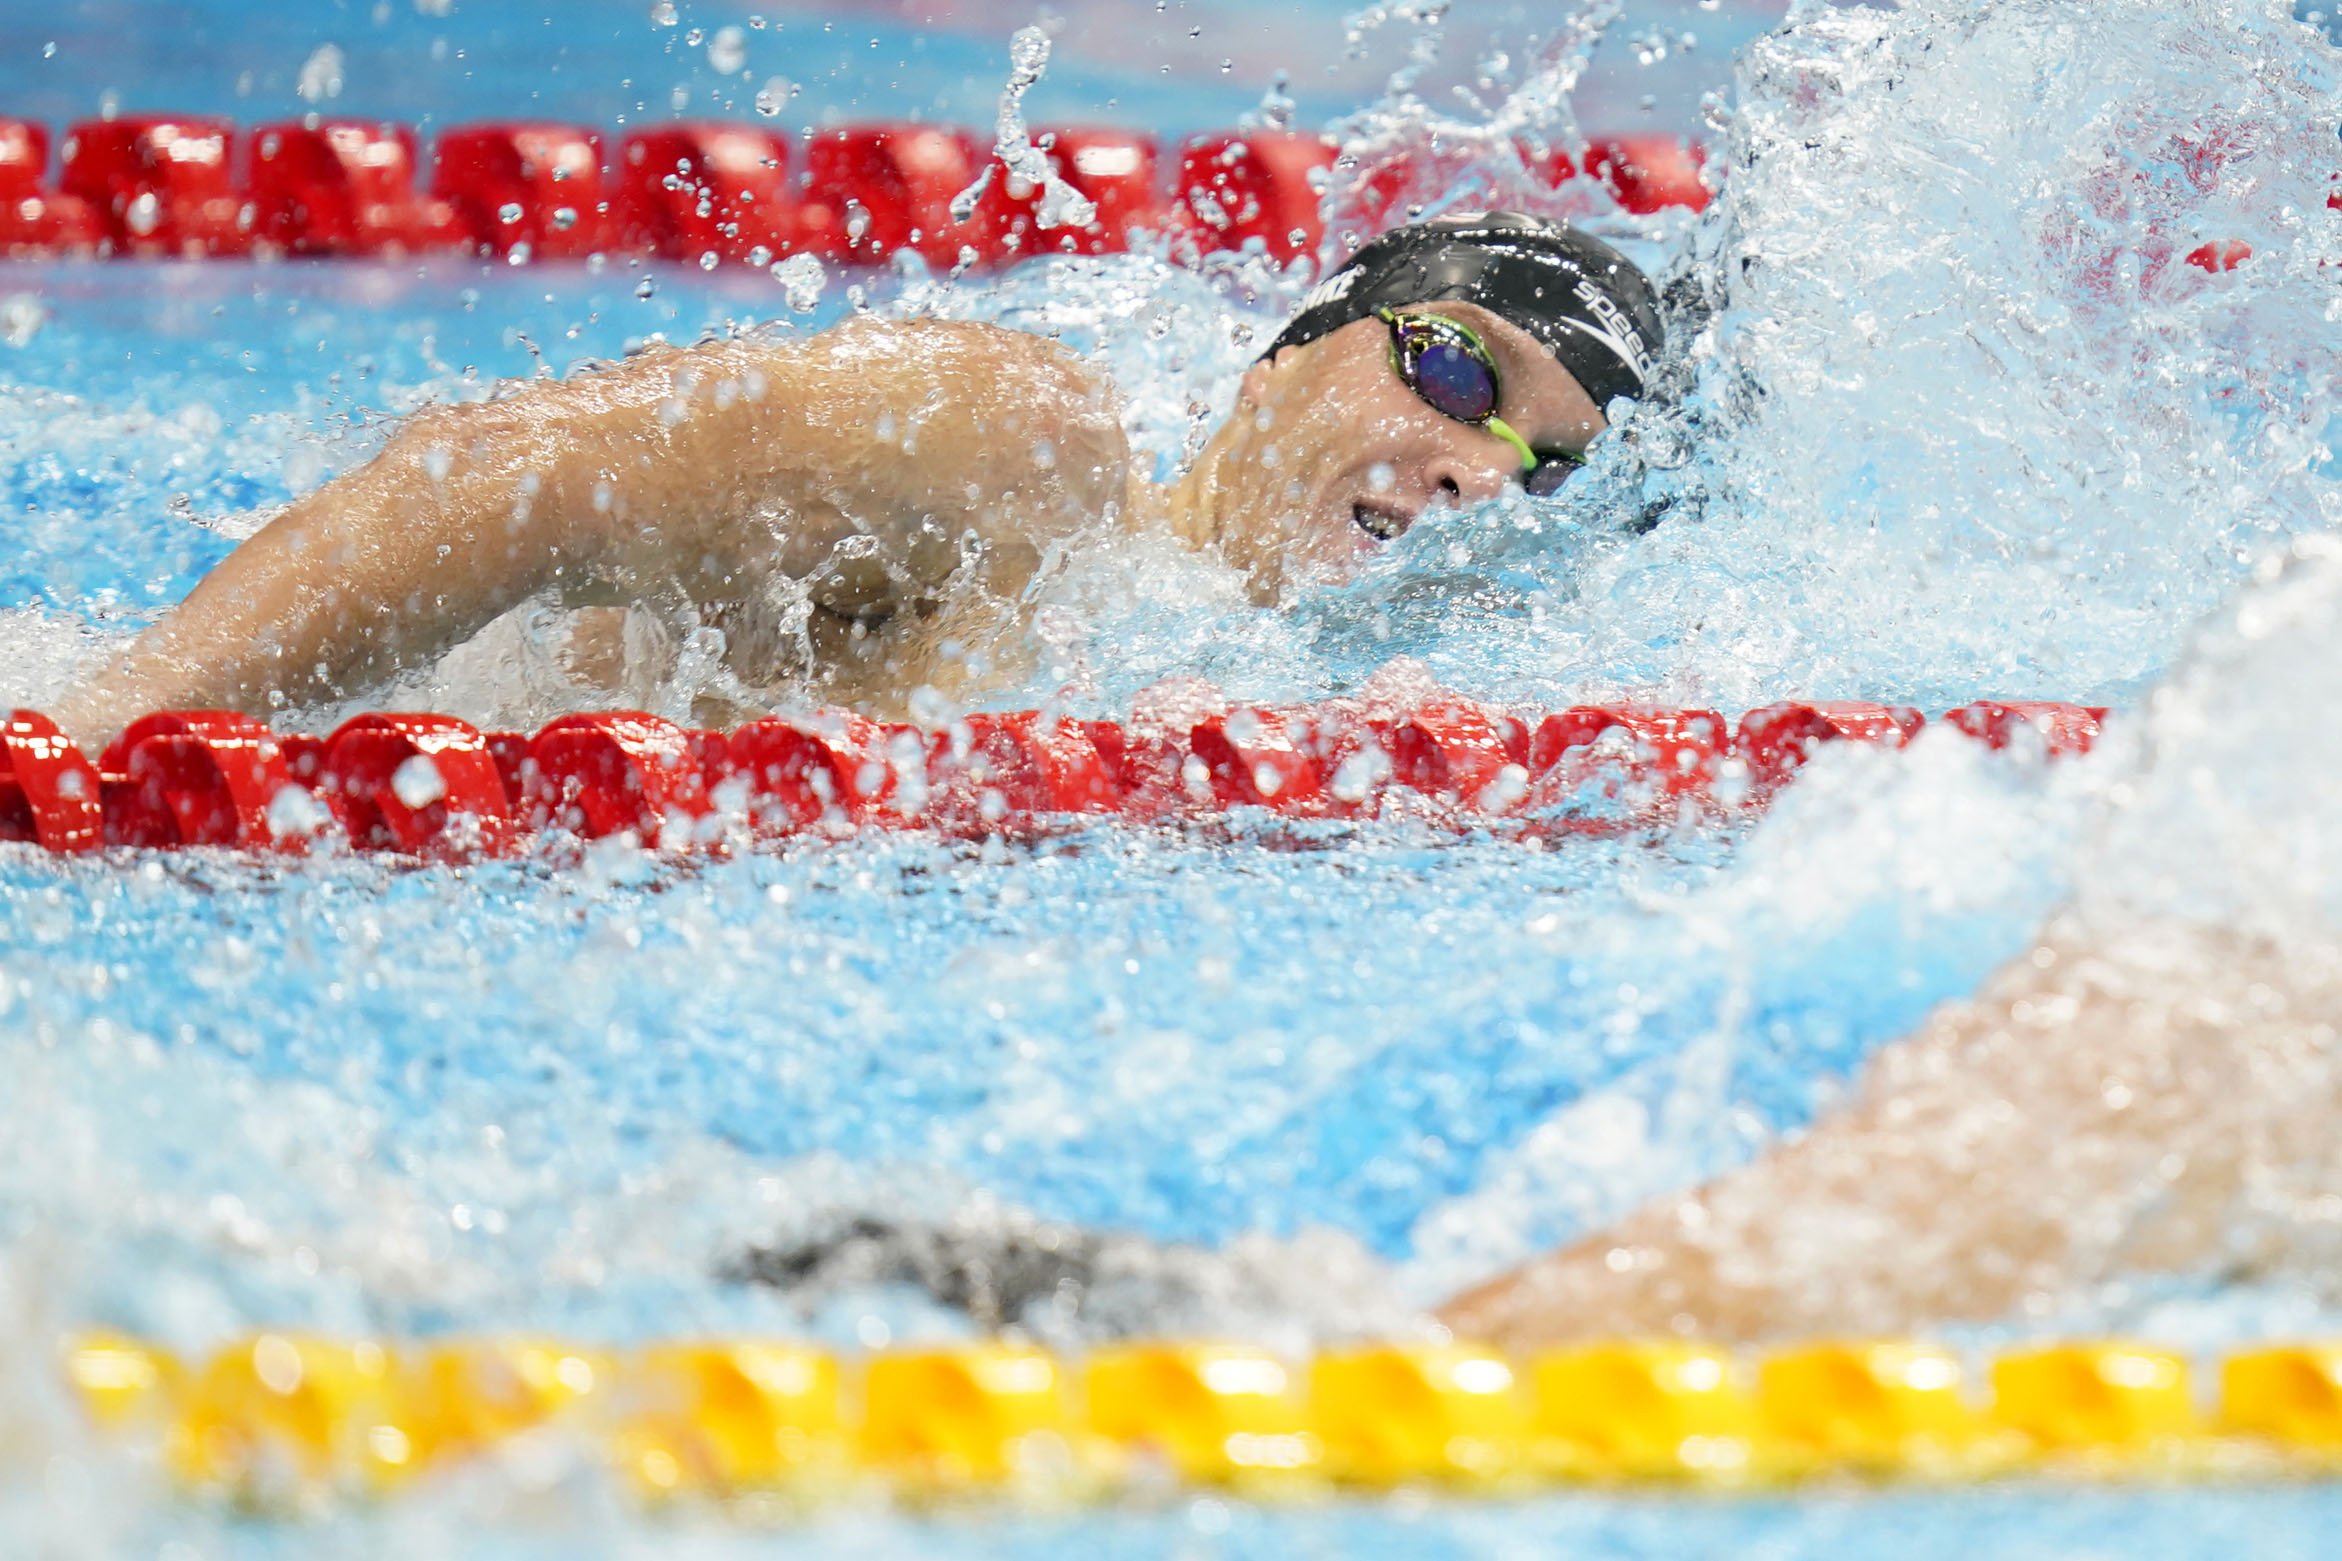 Jul 29, 2021; Tokyo, Japan; Robert Finke (USA) competes in the men's 800m freestyle final during the Tokyo 2020 Olympic Summer Games at Tokyo Aquatics Centre. Mandatory Credit: Grace Hollars-USA TODAY Sports